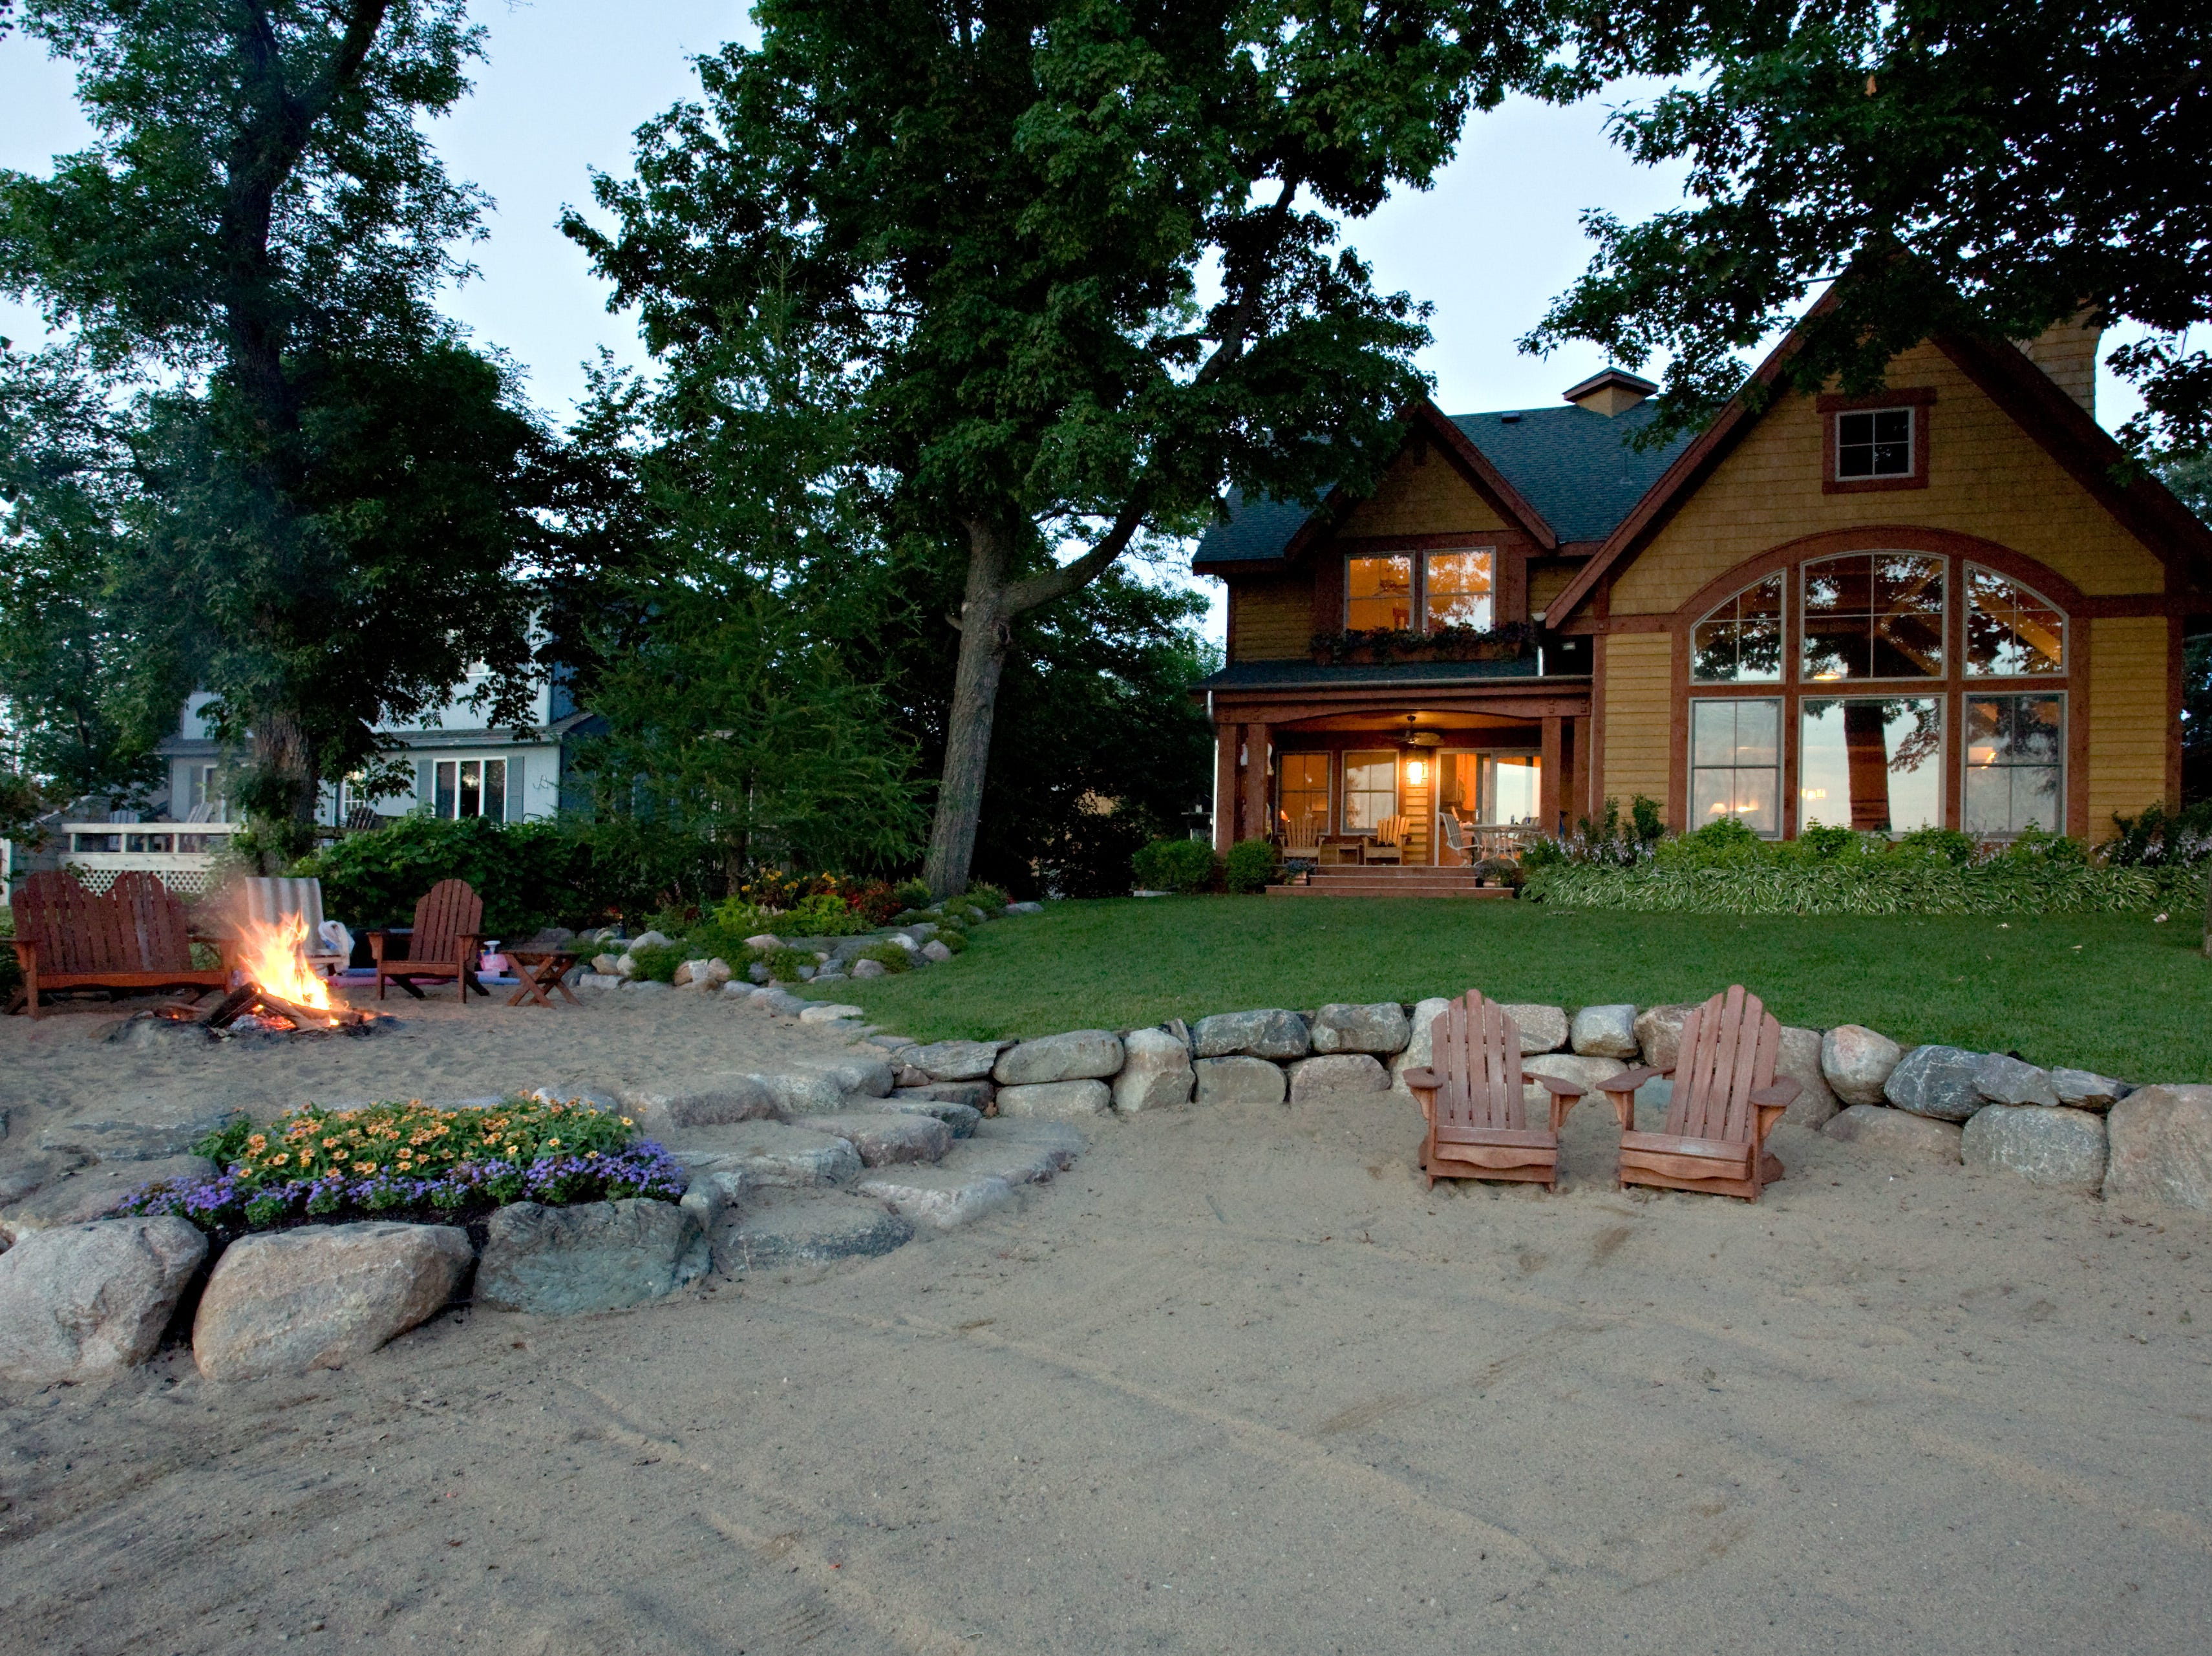 The wide sandy beach is ideal for taking advantage of the water and the fire pit area is like its own private escape.